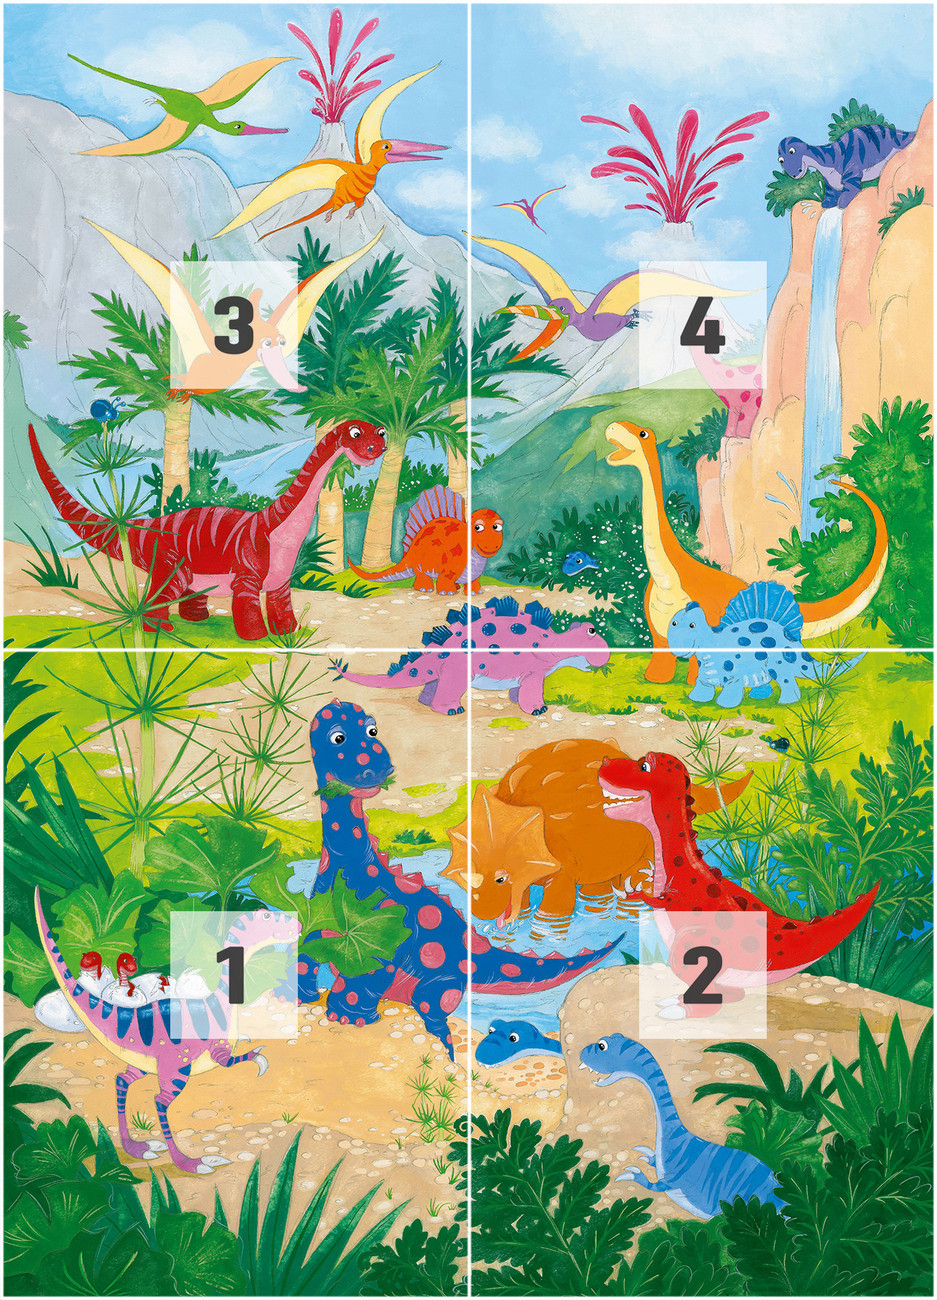 Dino world wall mural buy at europosters for Dinosaur wall mural uk